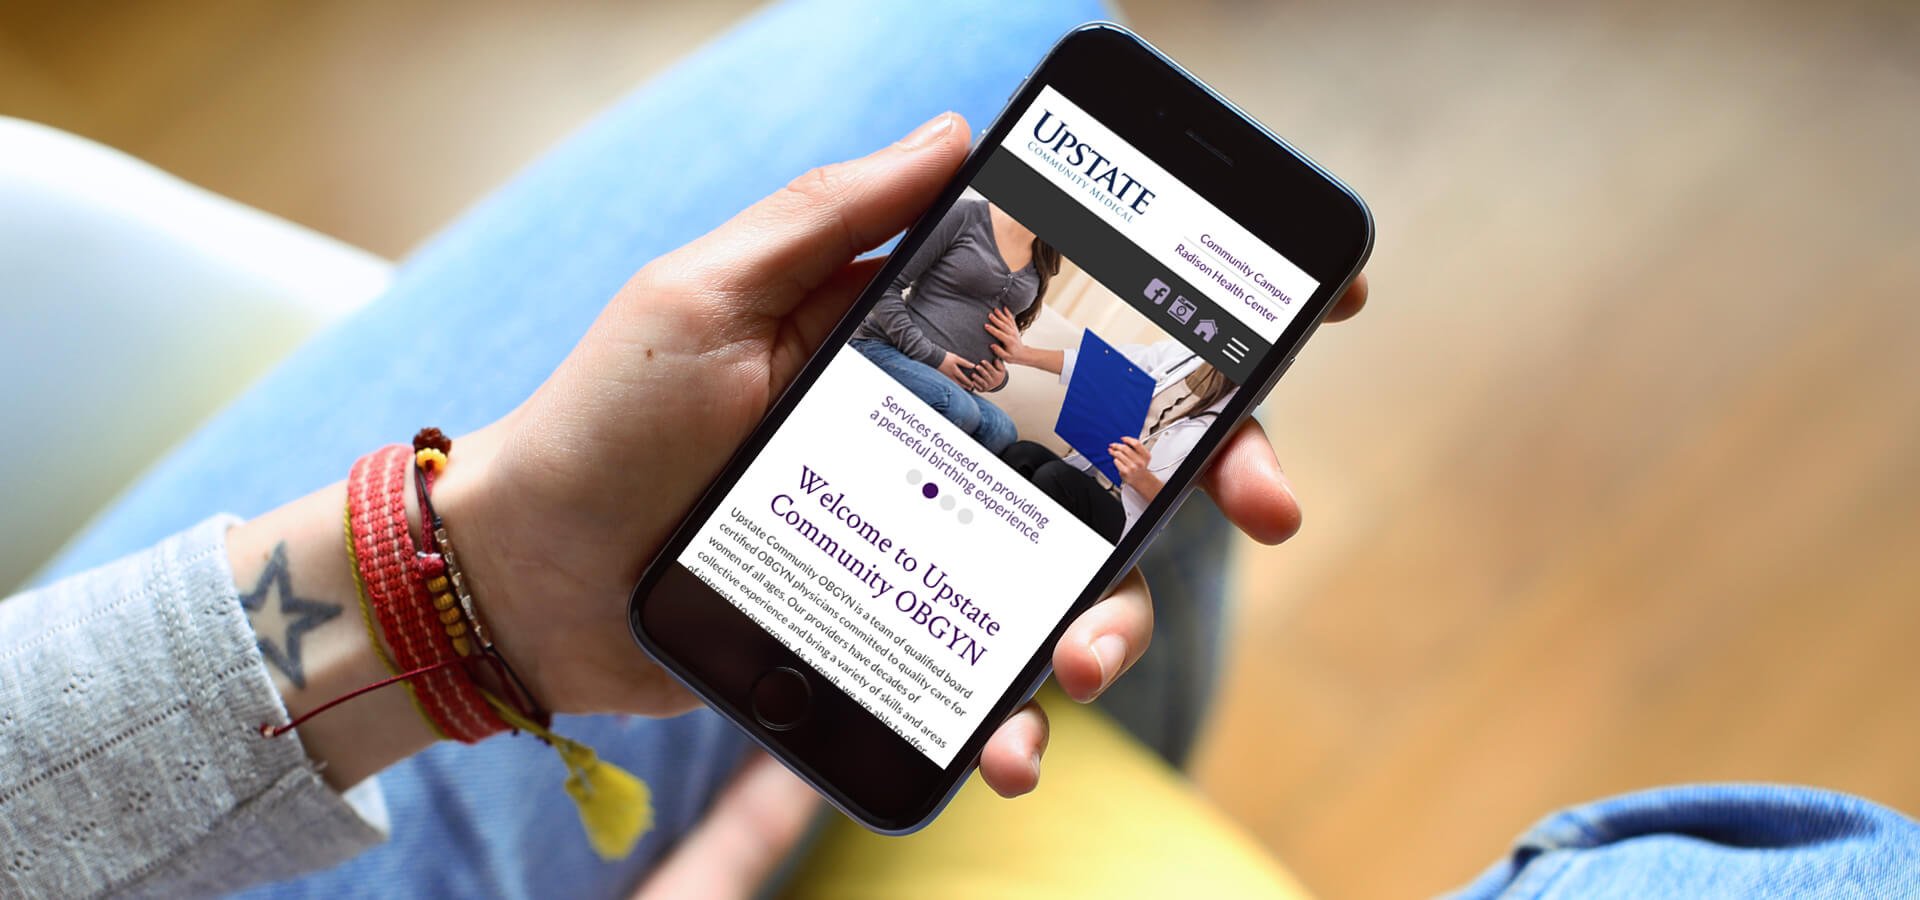 Upstate Community OBGYN Website on Mobile Phone